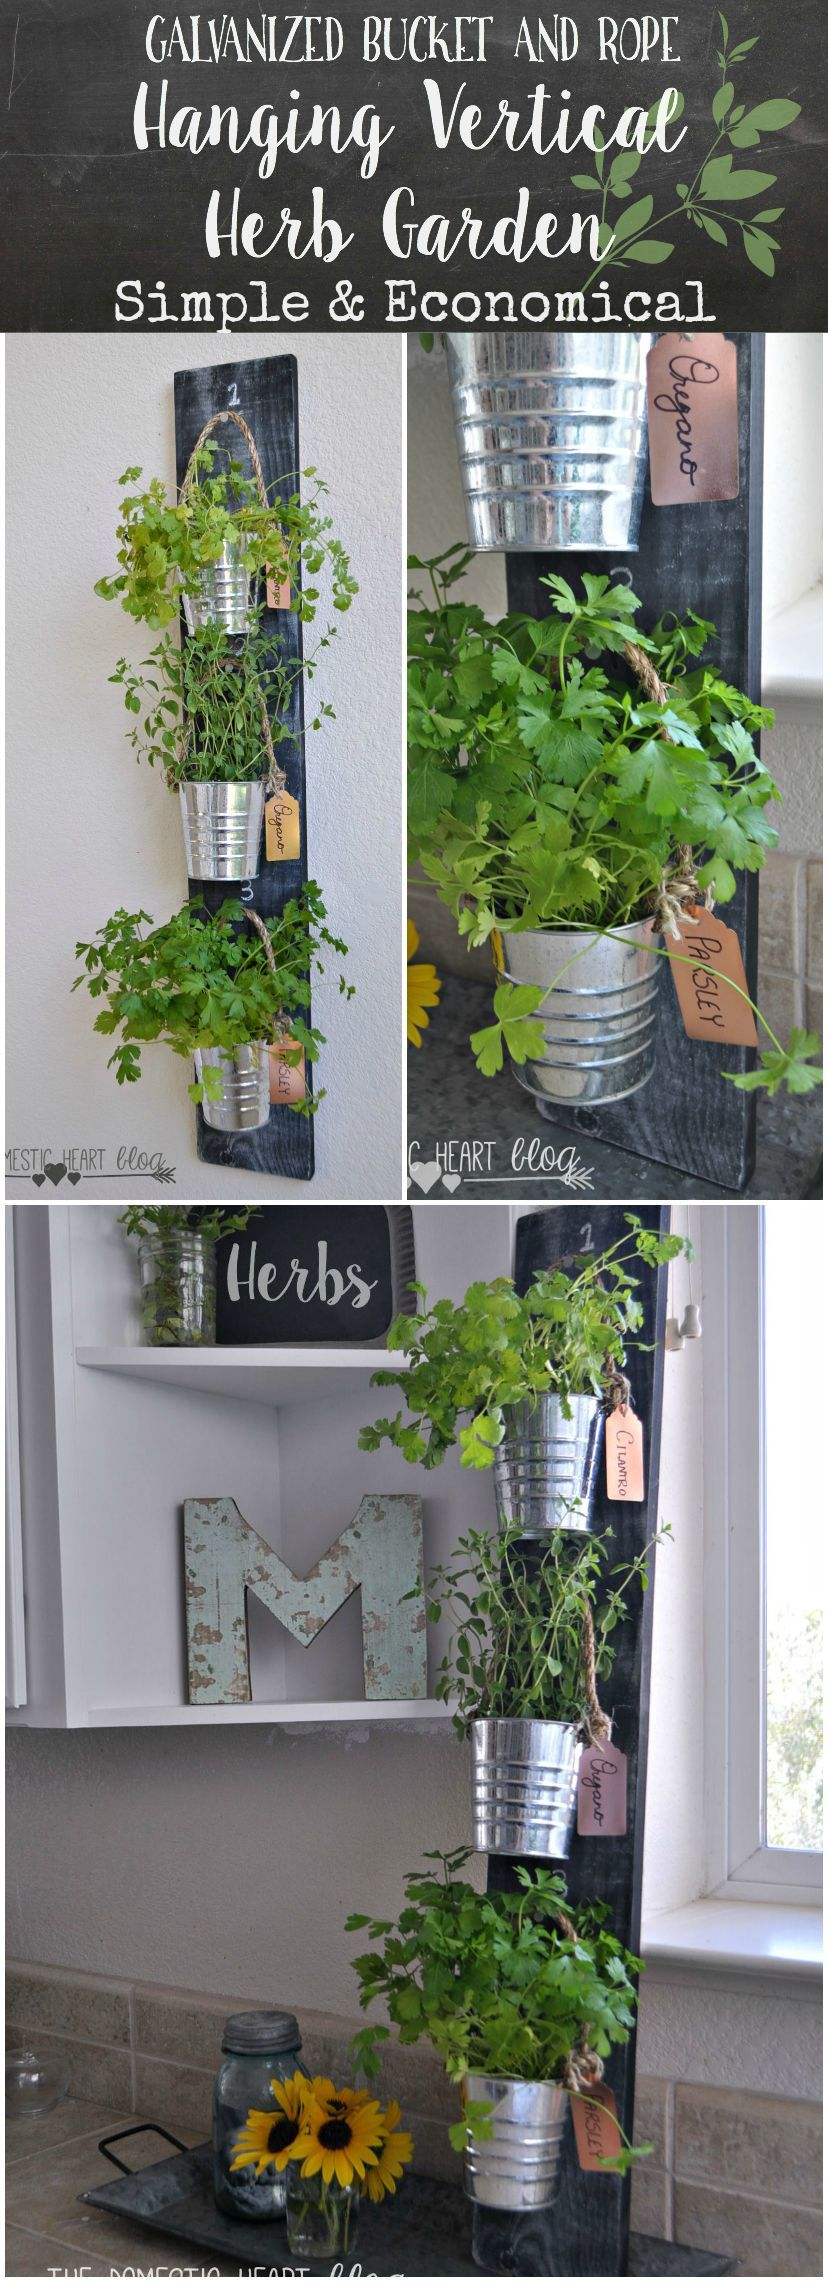 Unwins Kitchen Garden Herb Kit Herb Garden Pots And Plants On A Boardthats Awesome Http Www